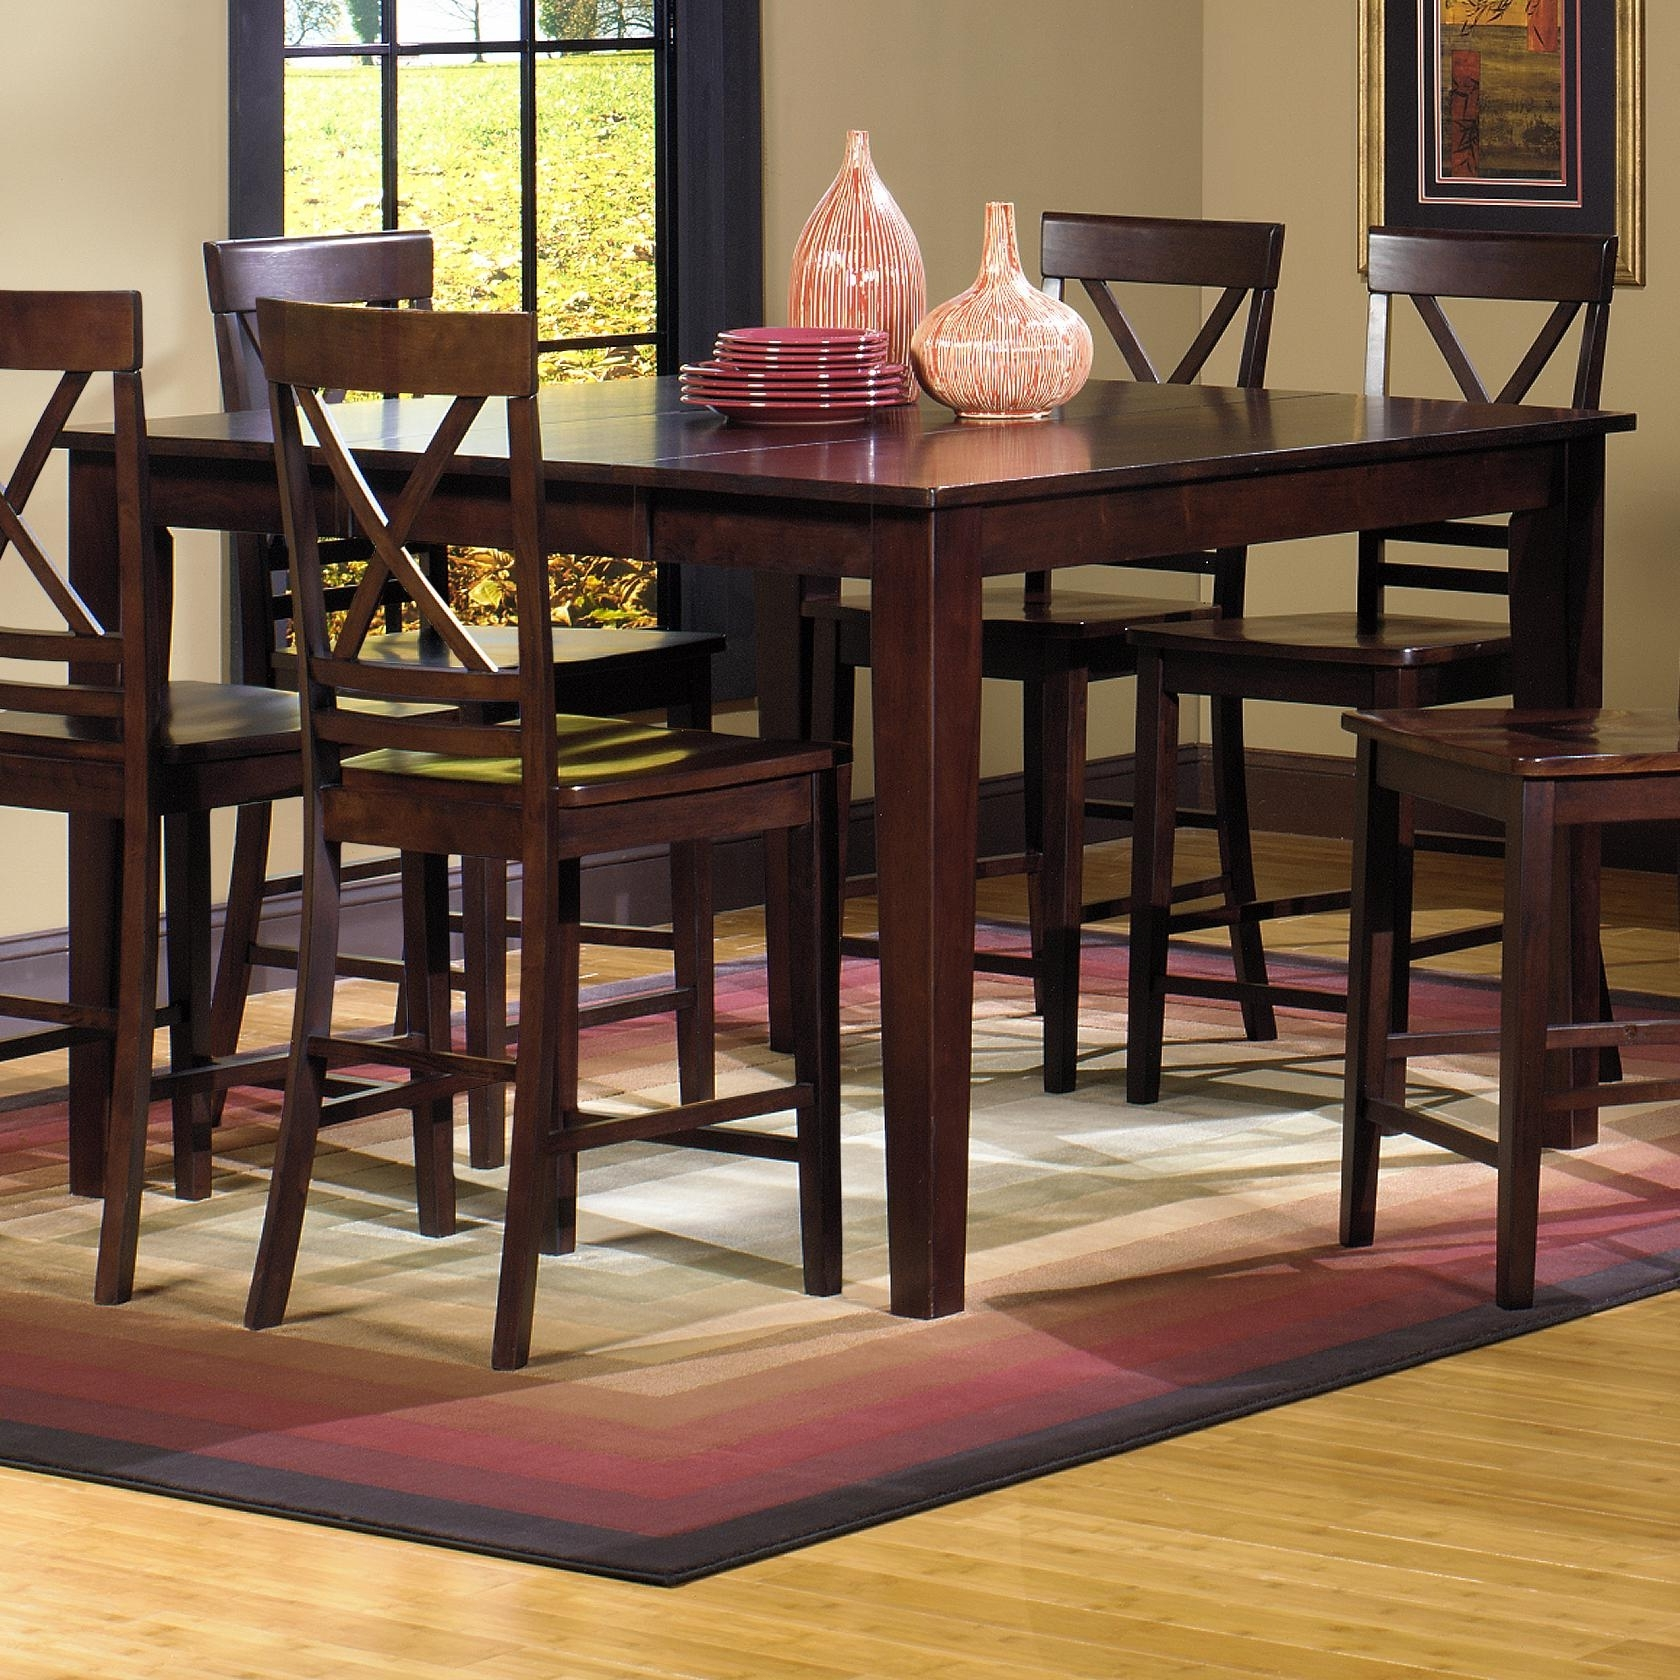 Newest Progressive Furniture Winston Counter Dining Table With Self Storing Inside Lindy Espresso Rectangle Dining Tables (View 20 of 25)